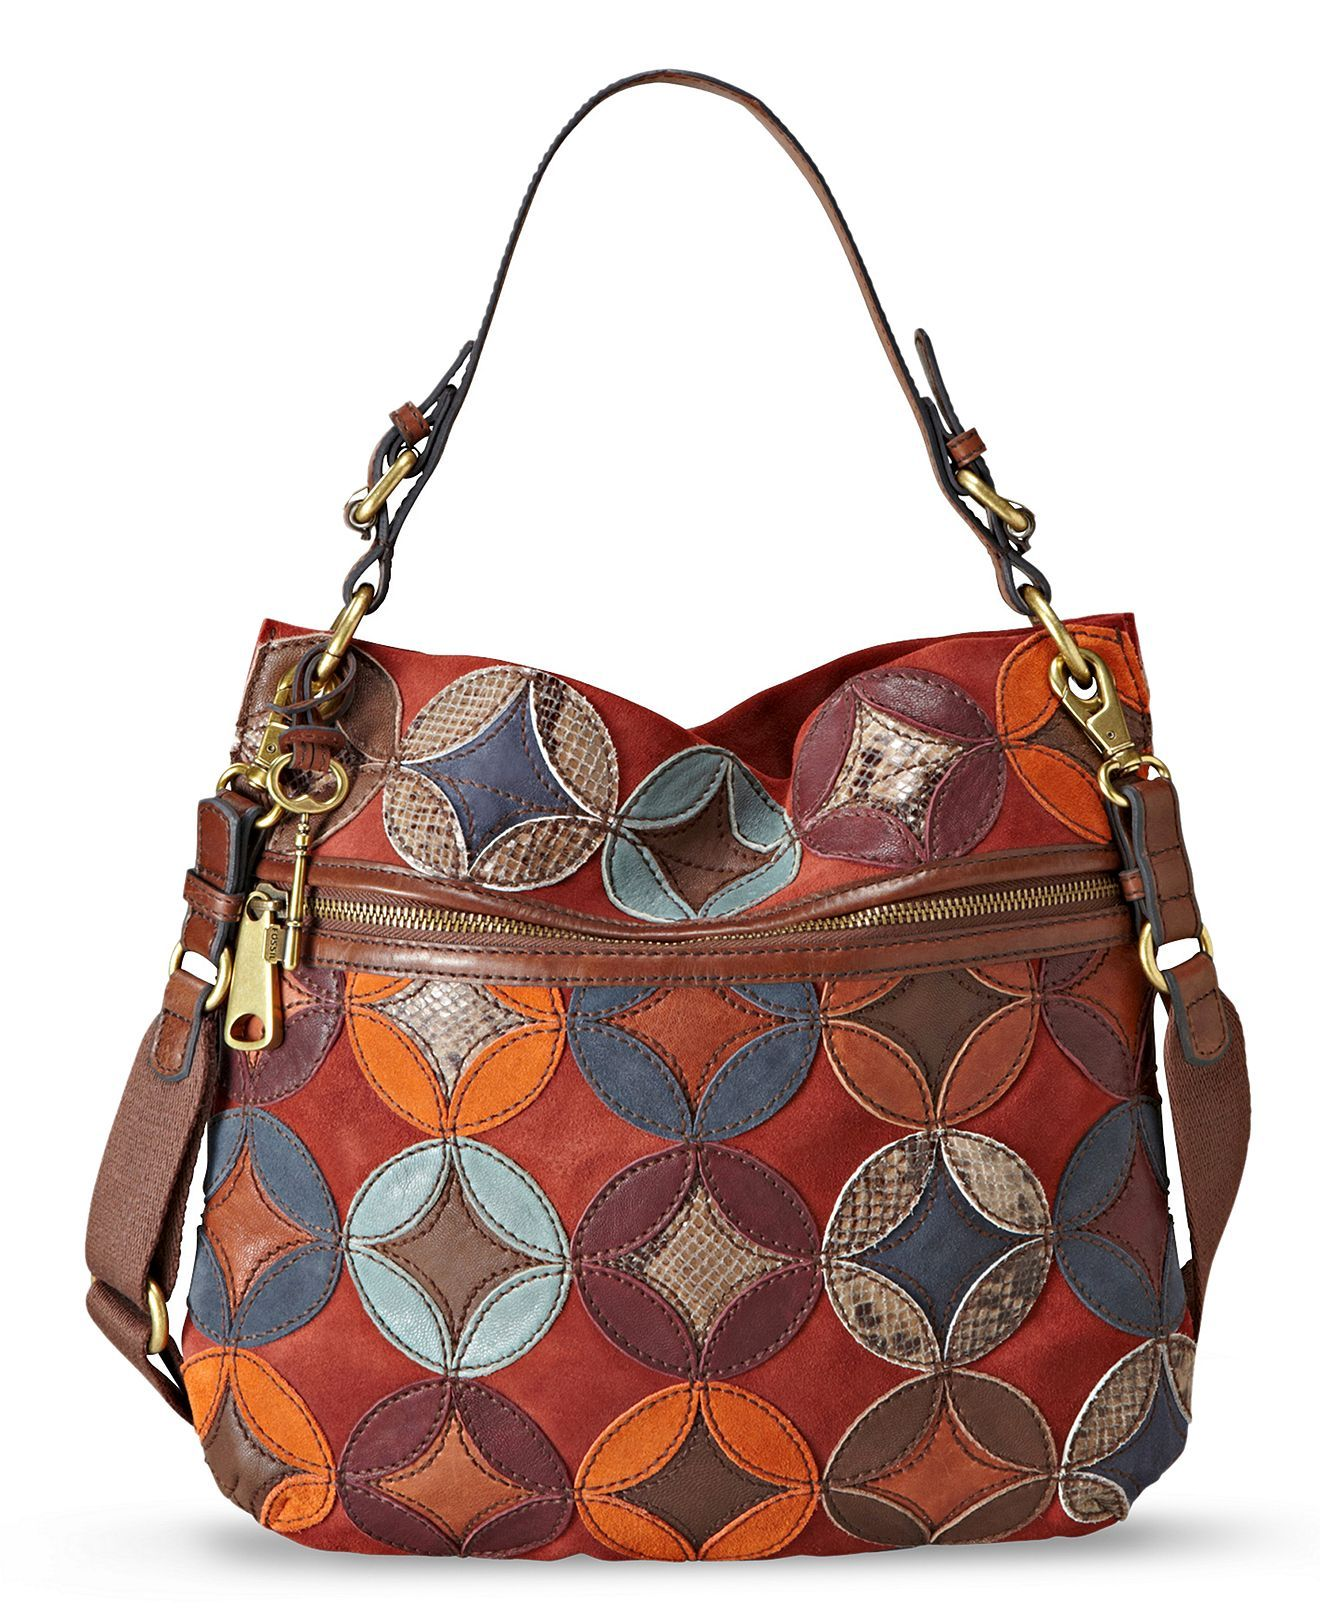 Fossil Handbag Leather Patchwork Macy S